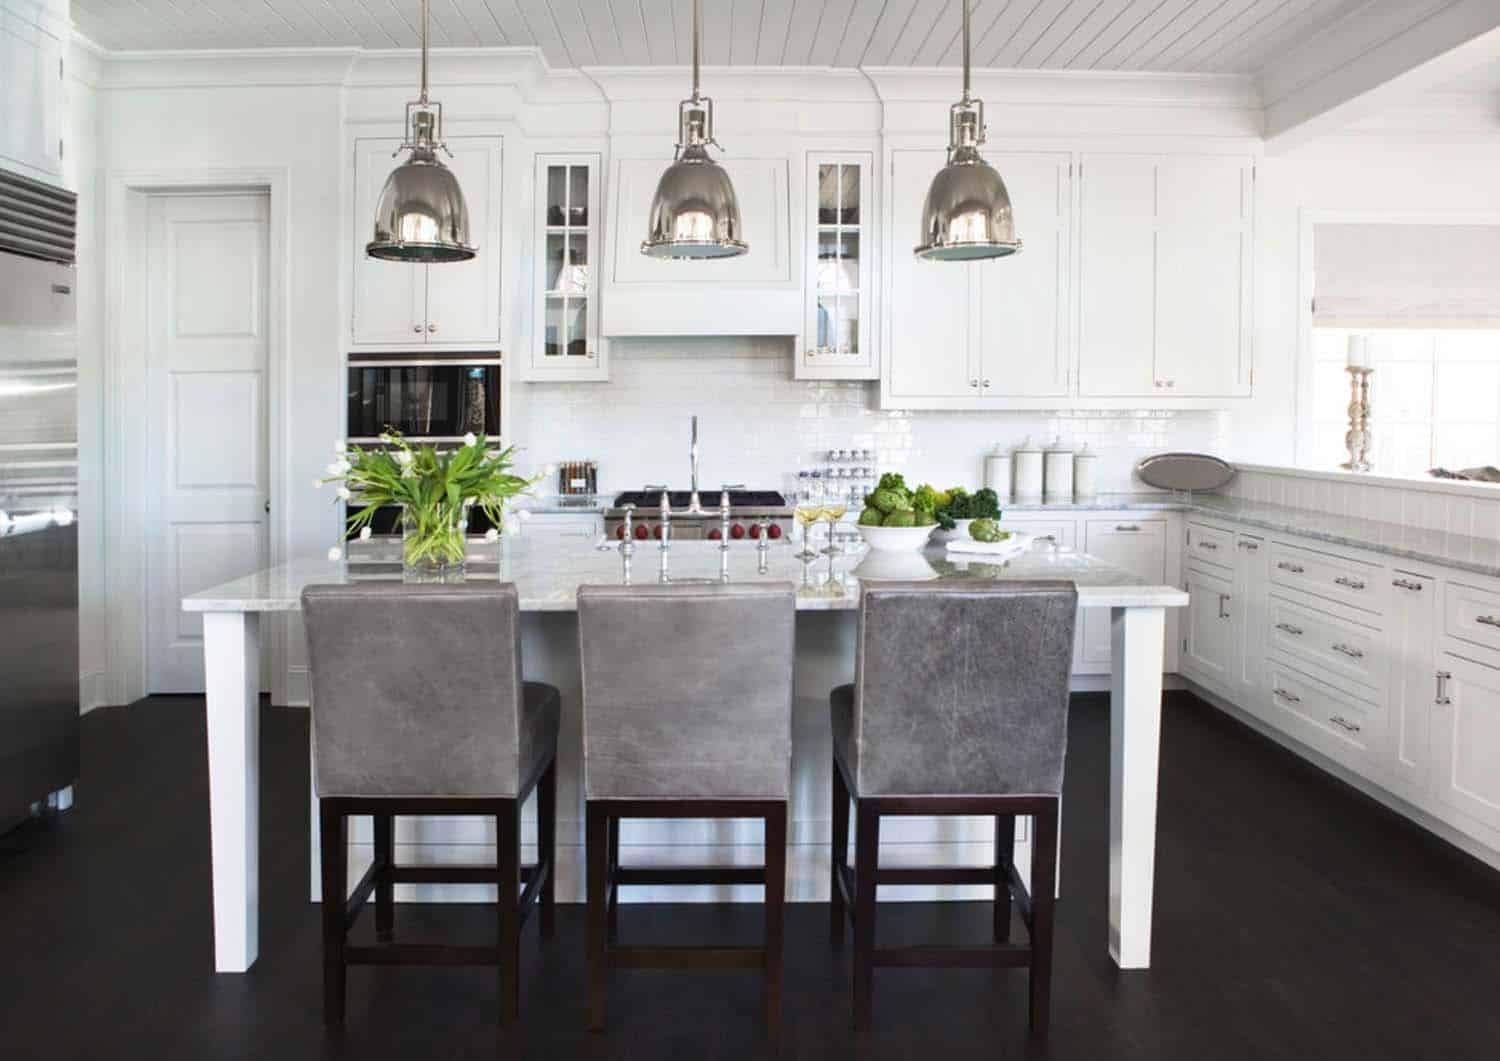 Shingle Style Cottage-Linda McDougald Design-09-1 Kindesign